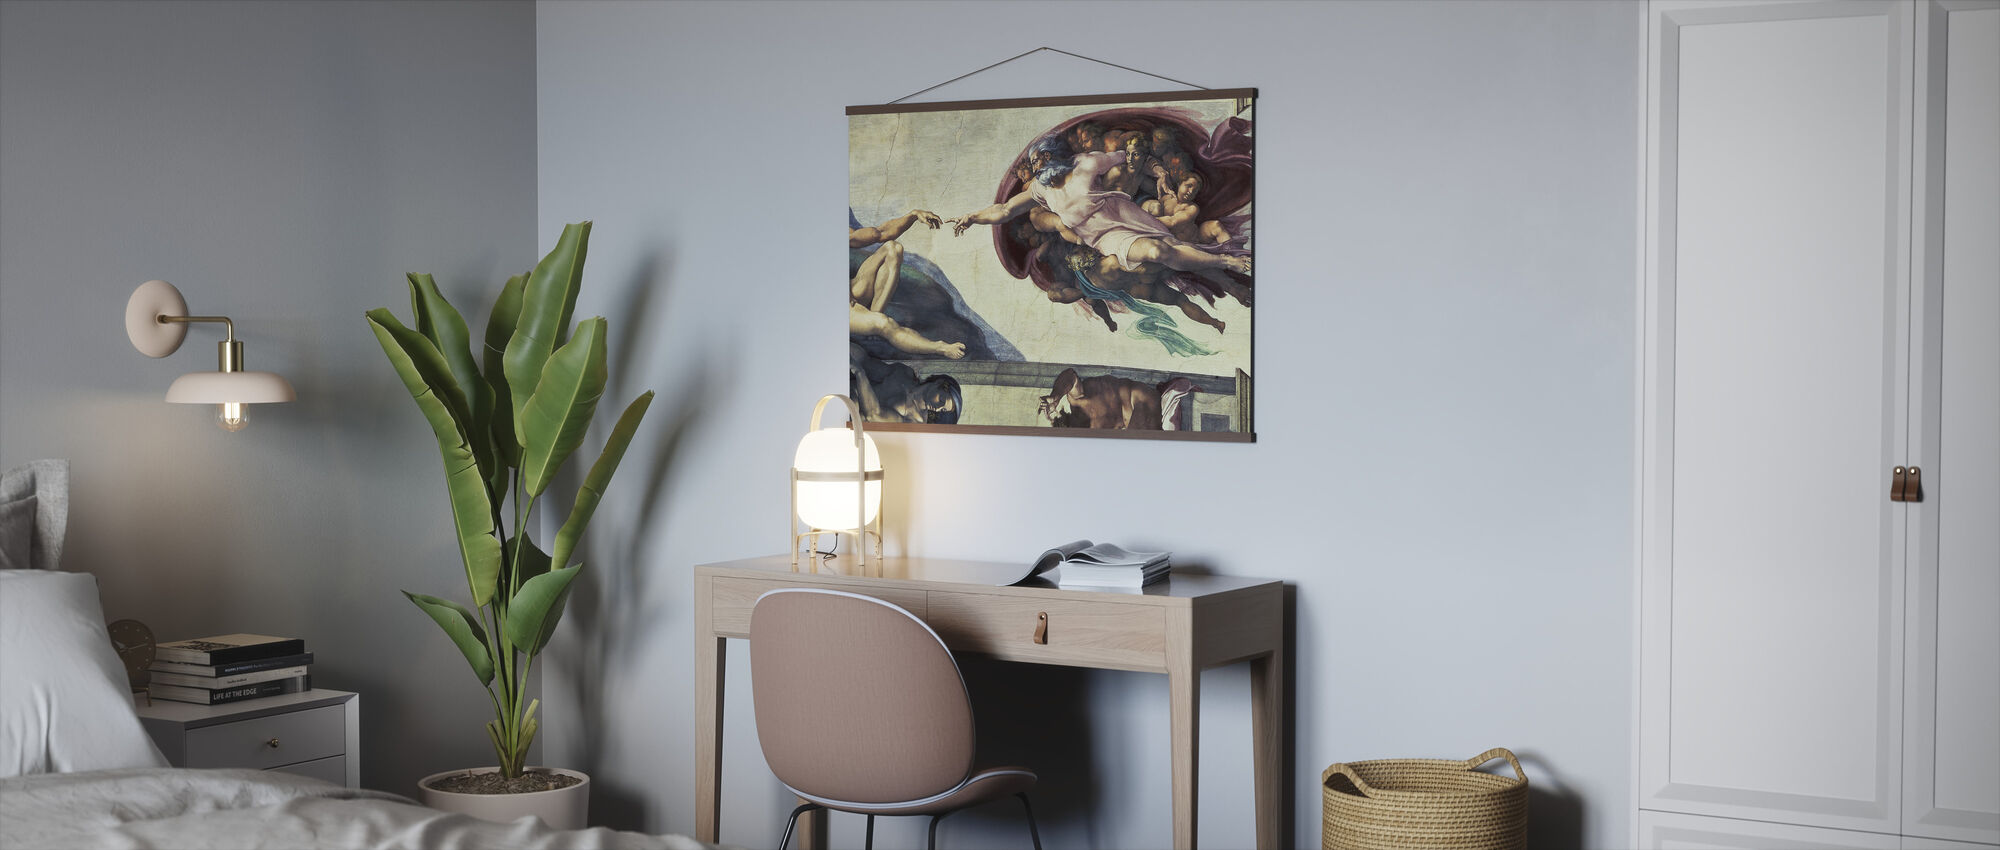 Creation of Adam - Michelangelo Buonarroti - Poster - Office